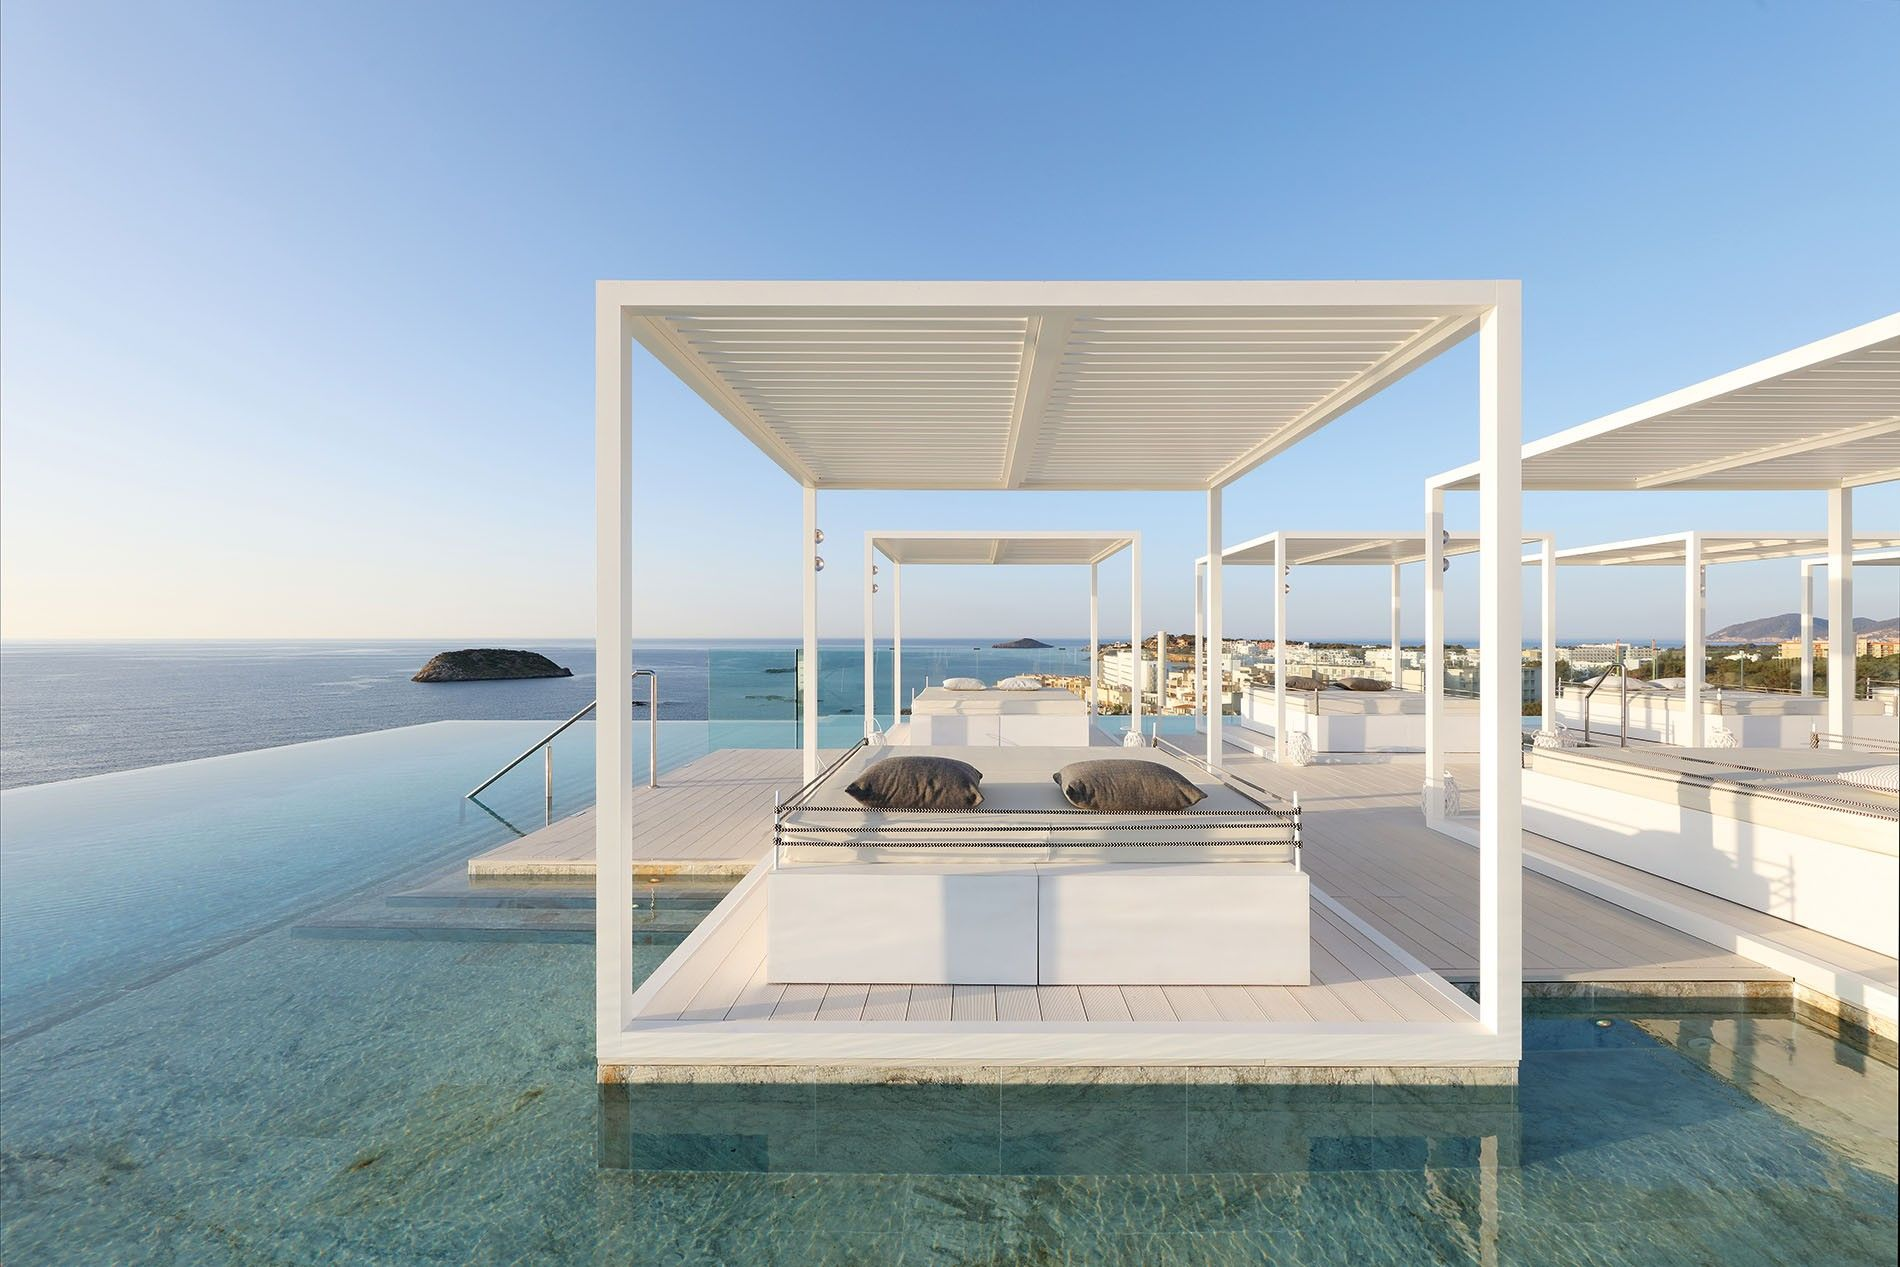 The Ibiza you've dreamed of: Bless Hotel is the 'Coco Chanel-inspired' hotel on the Santa Eulalia coast.